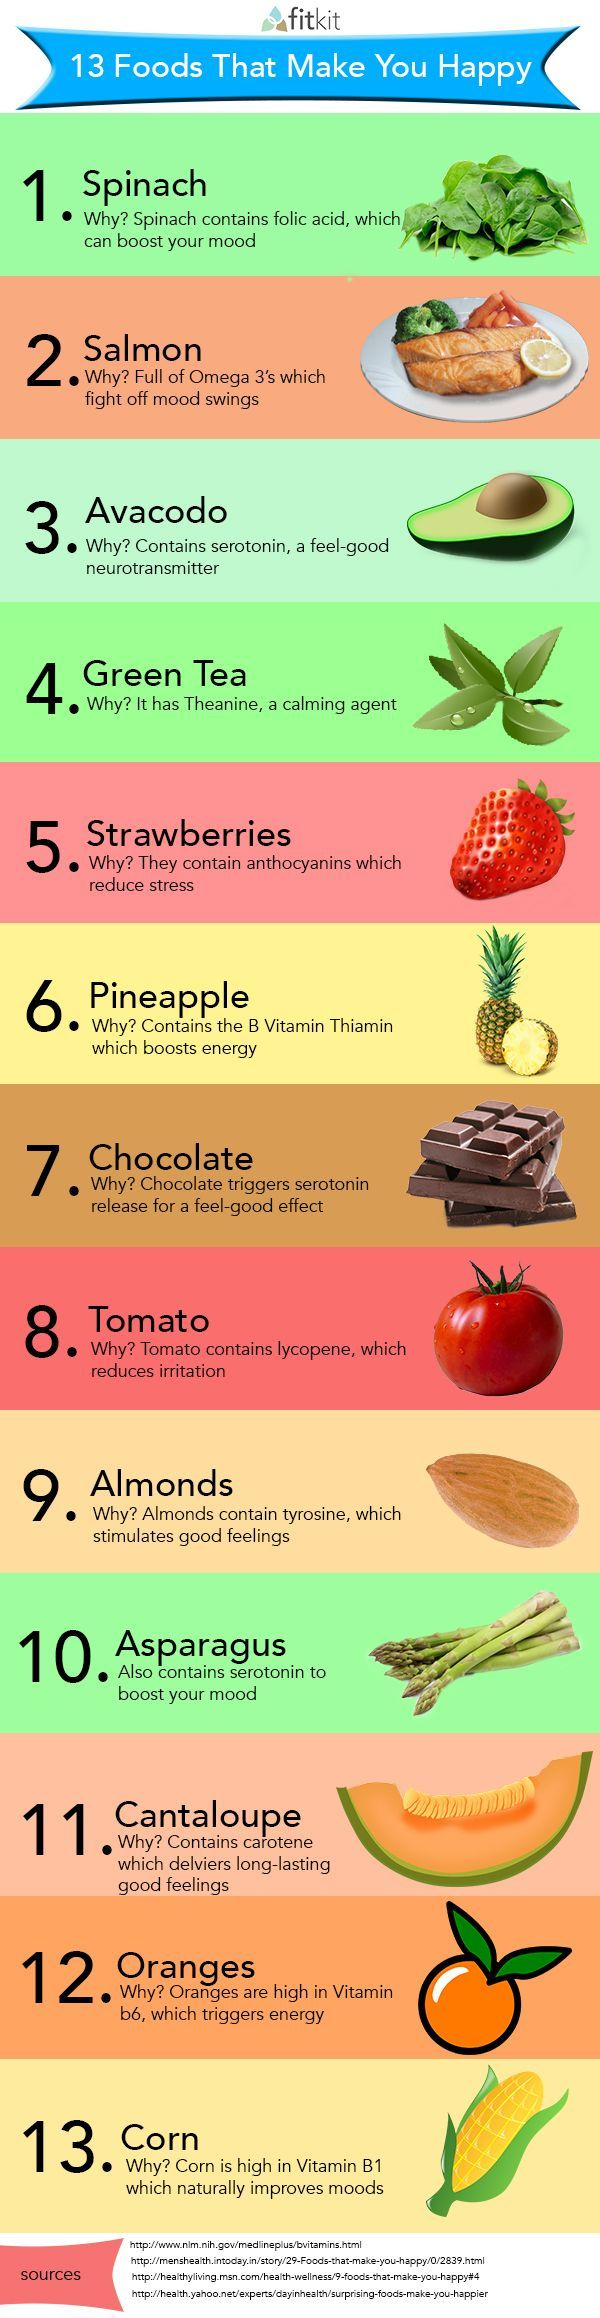 13 Foods That Make You Happy, that must be why I am usually in a good mood cause these are my favorite foods! #animals #followback #F4F